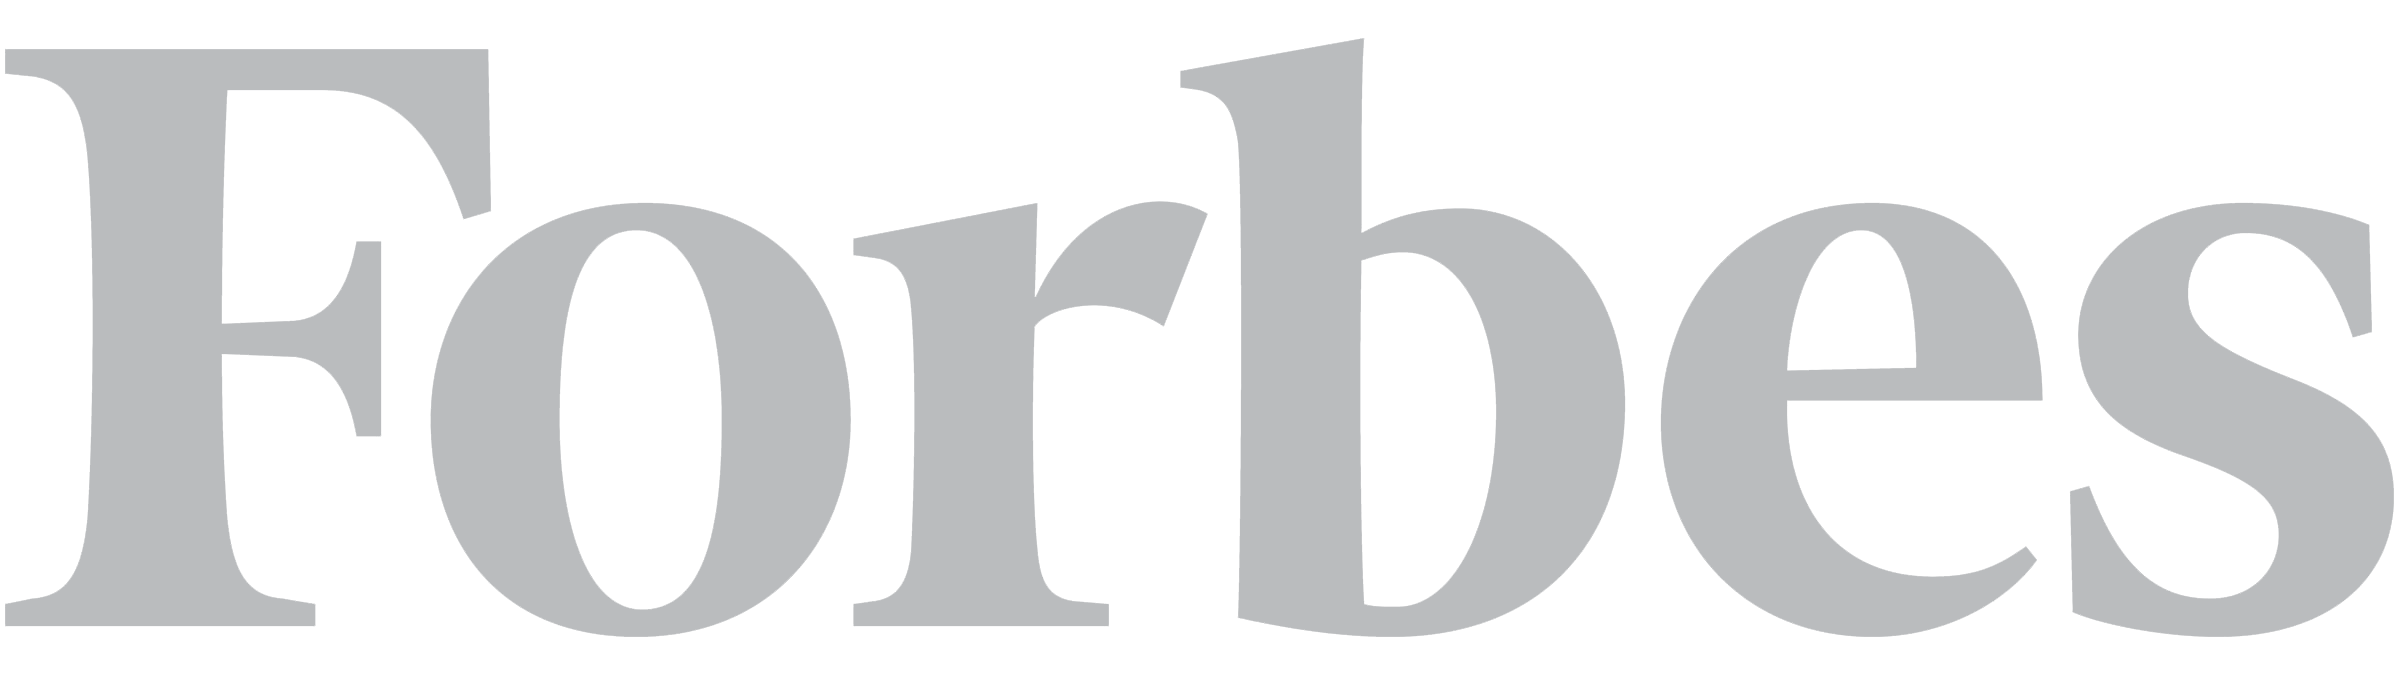 forbes-logo-Edited